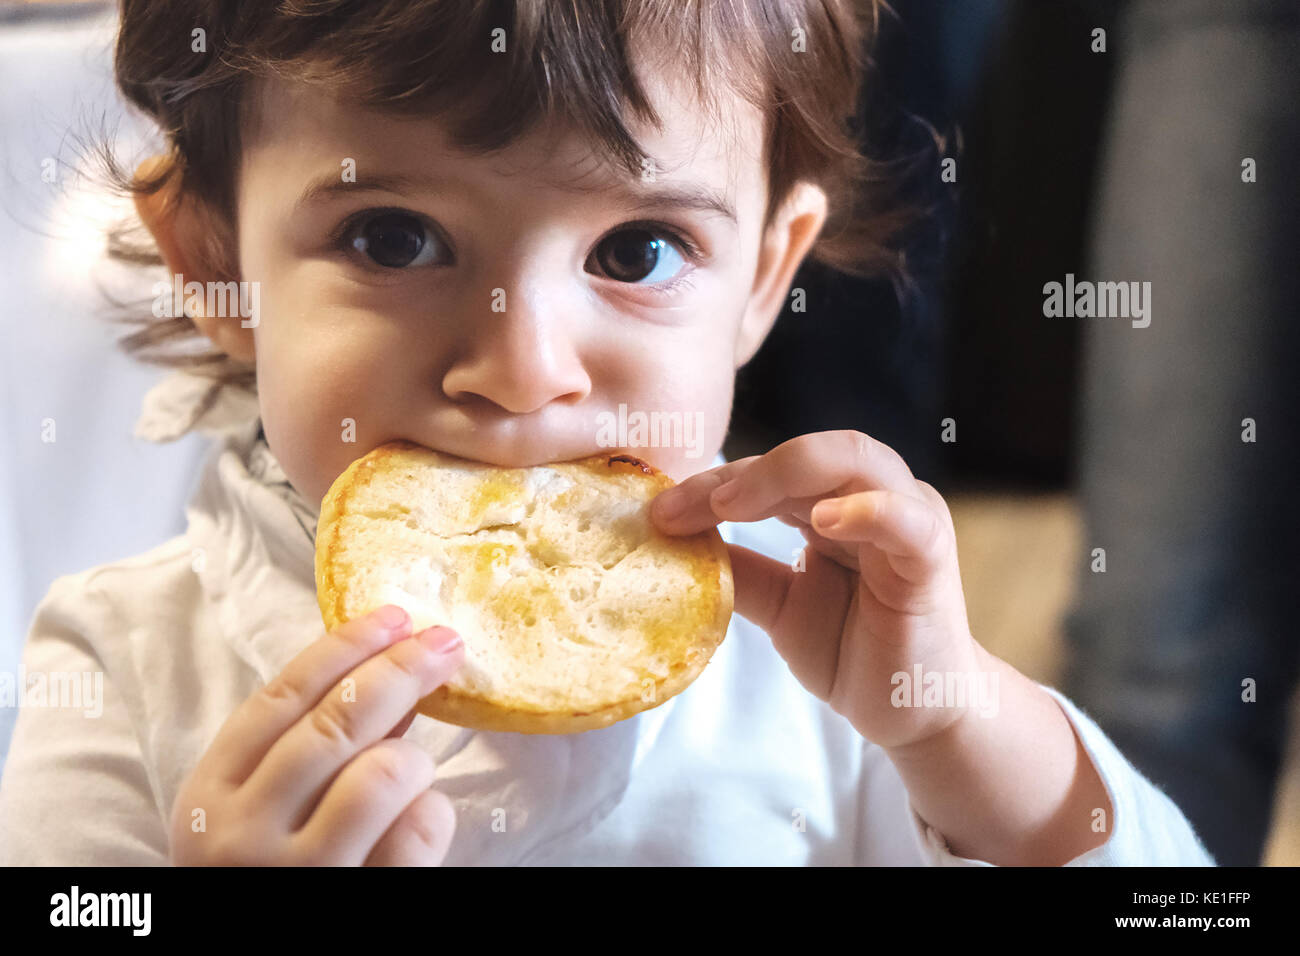 baby child eat carbohydrates -  newborn eating face closeup portrait - unhealthy diet for kids Stock Photo